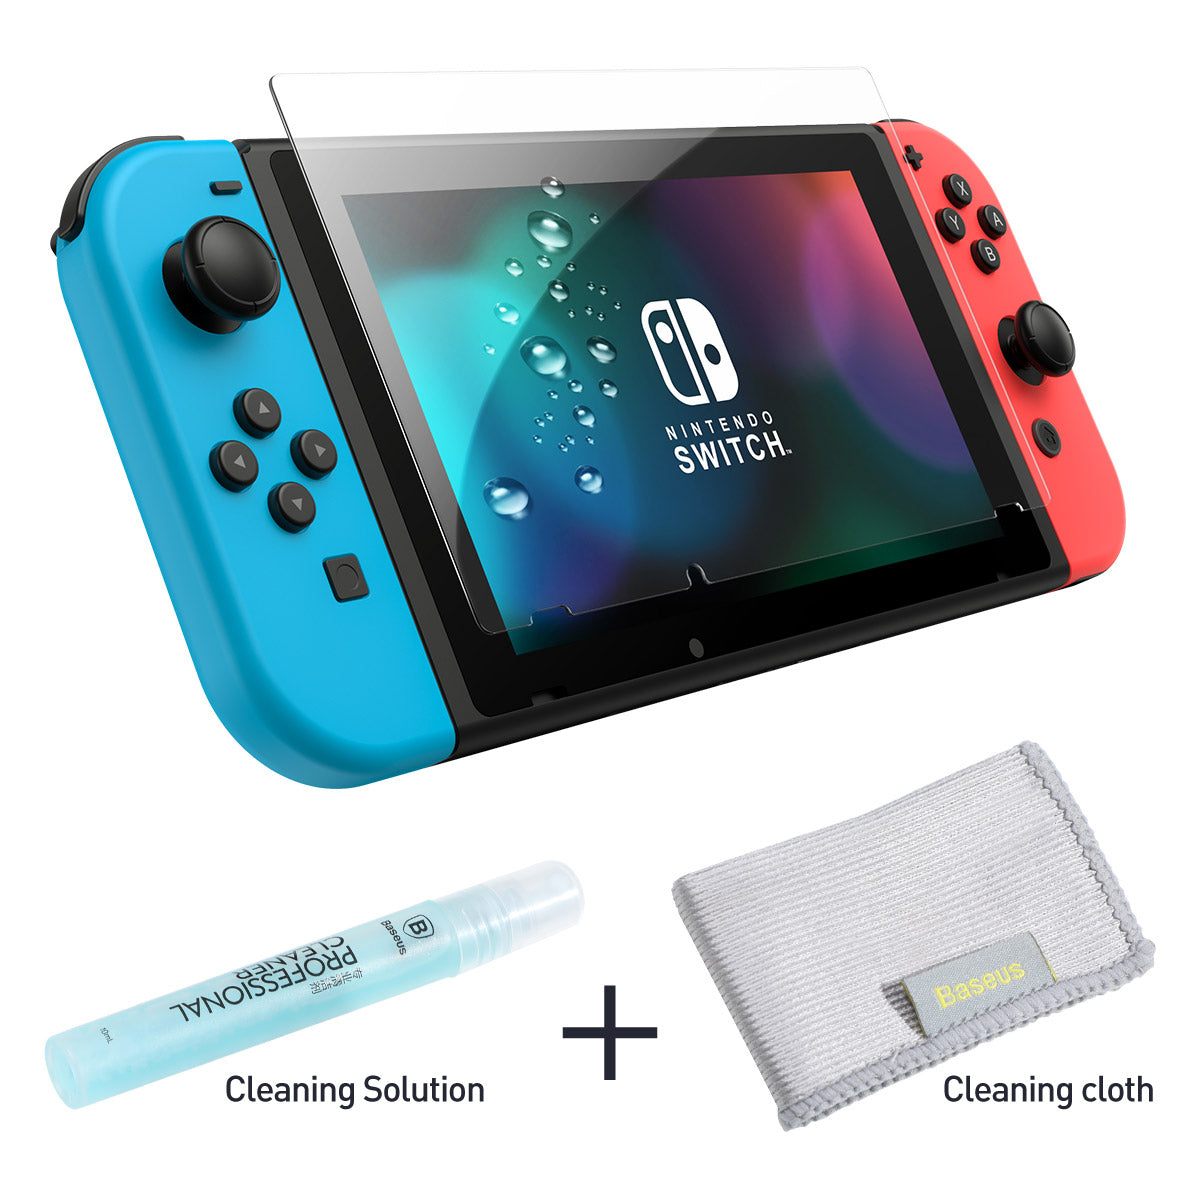 BASEUS 0.3mm All Glass Tempered Film (Bottled Cleaning Solution) for Nintendo Switch Transparent